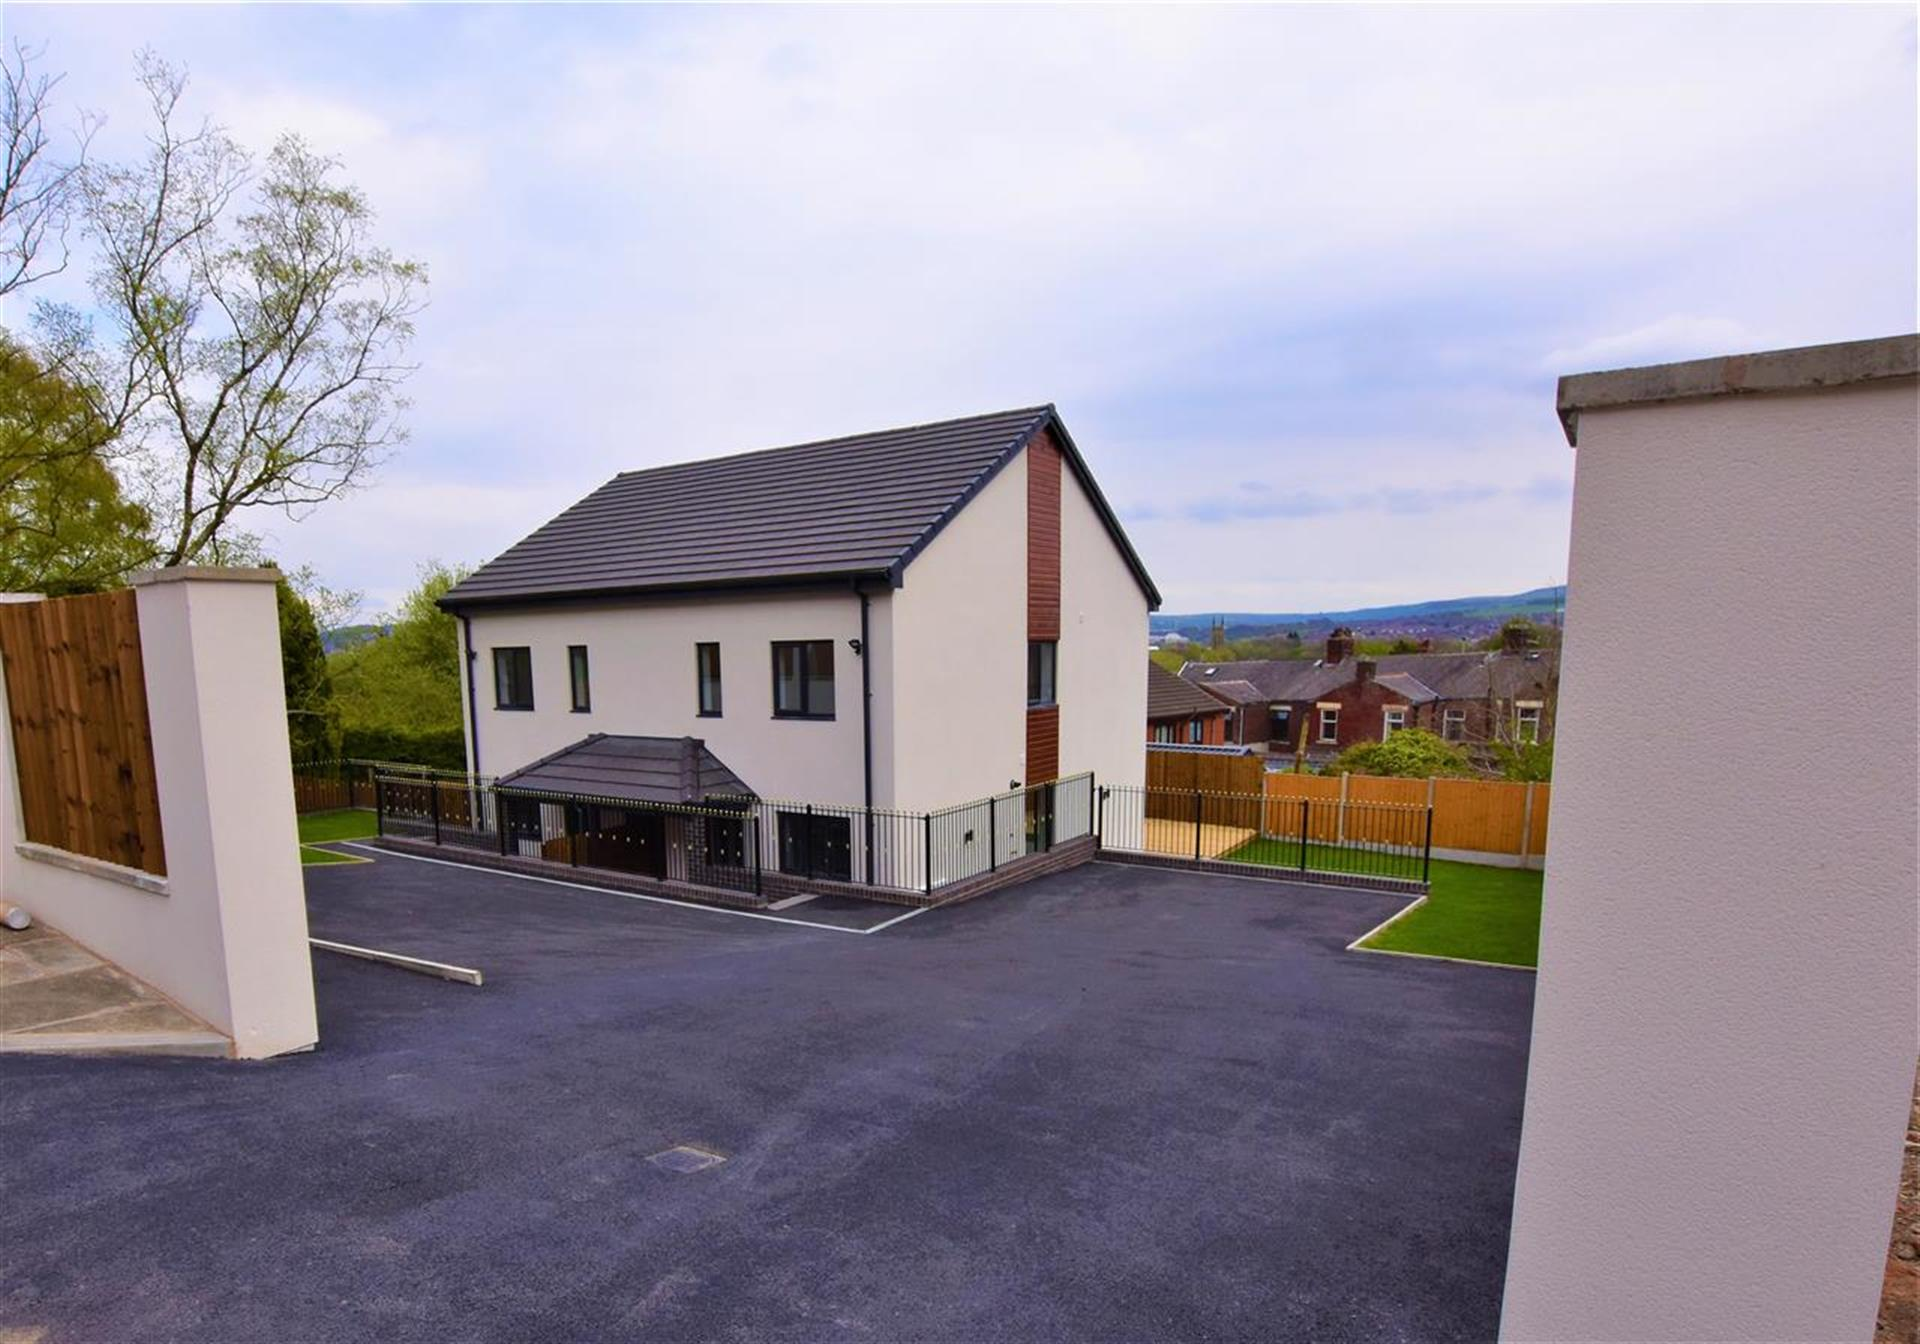 3 Bedroom Semi-detached House For Sale - External